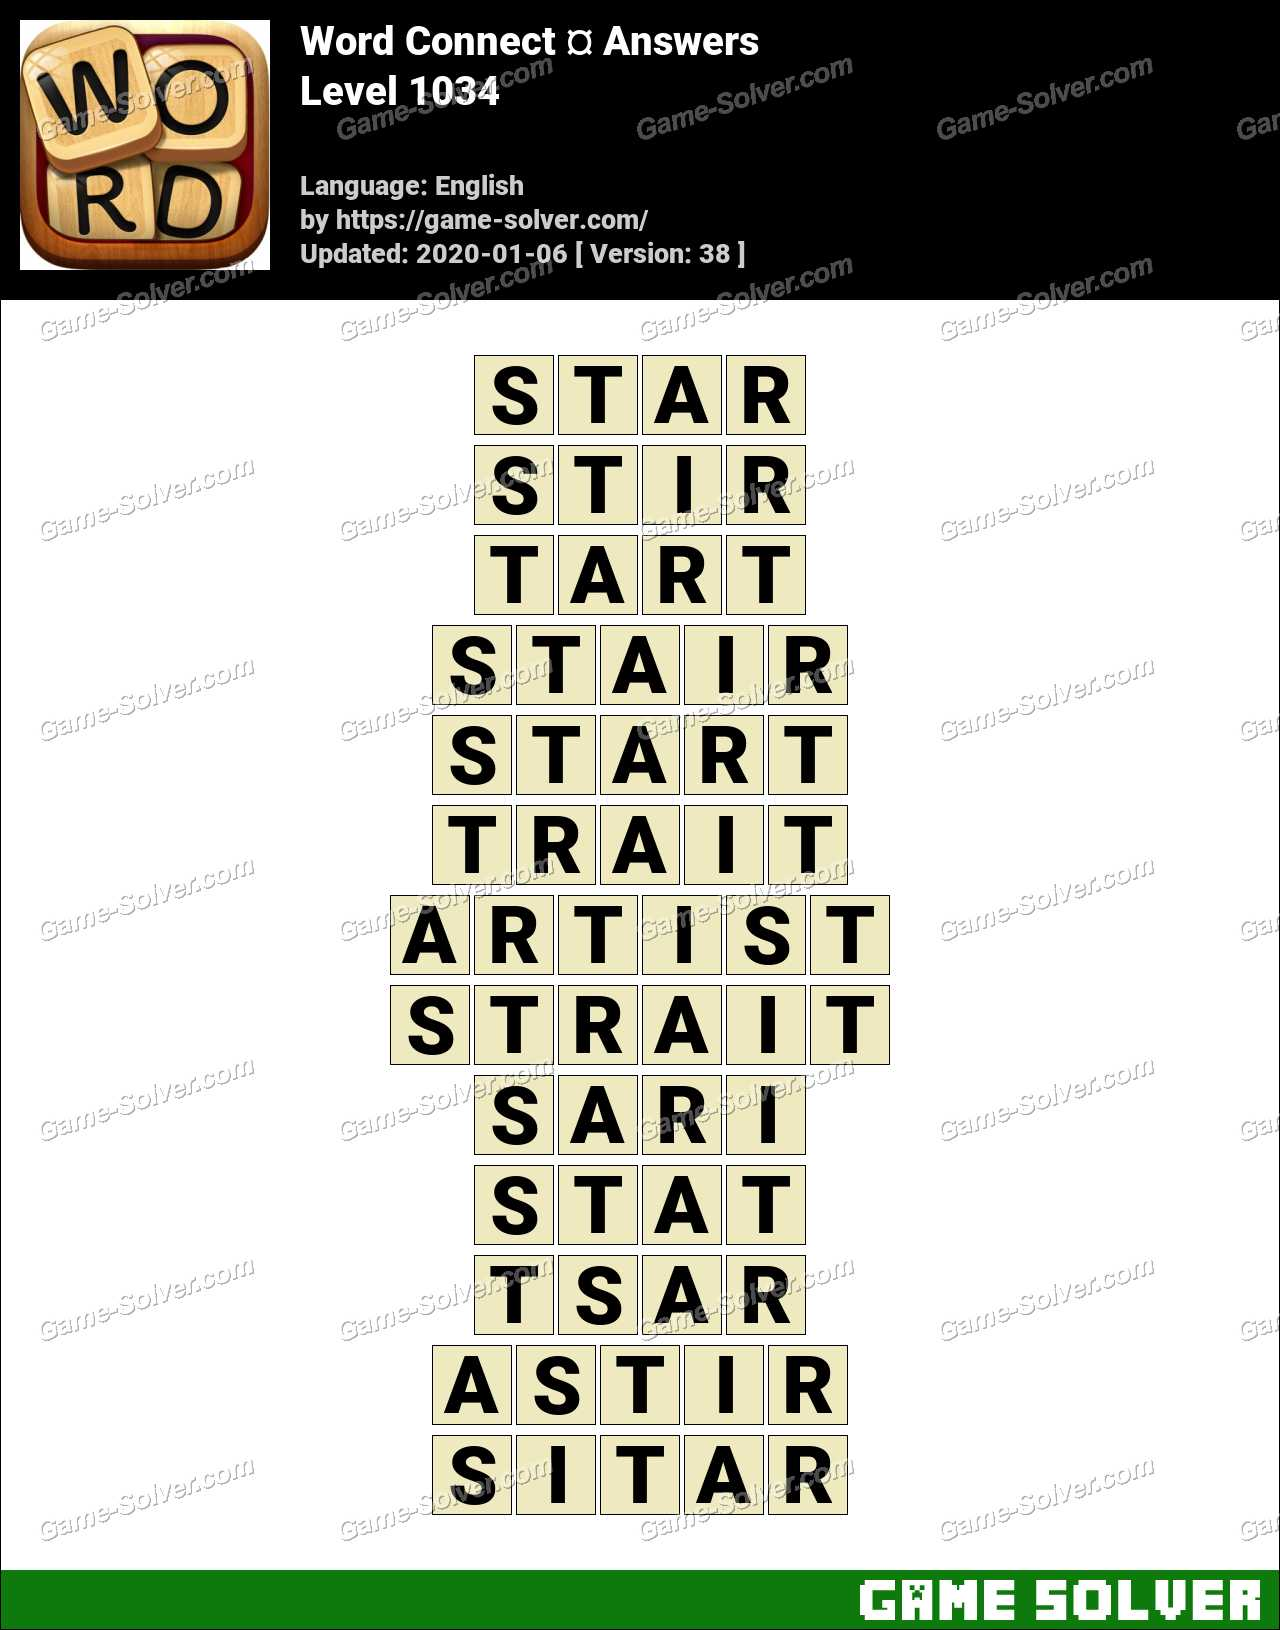 Word Connect Level 1034 Answers